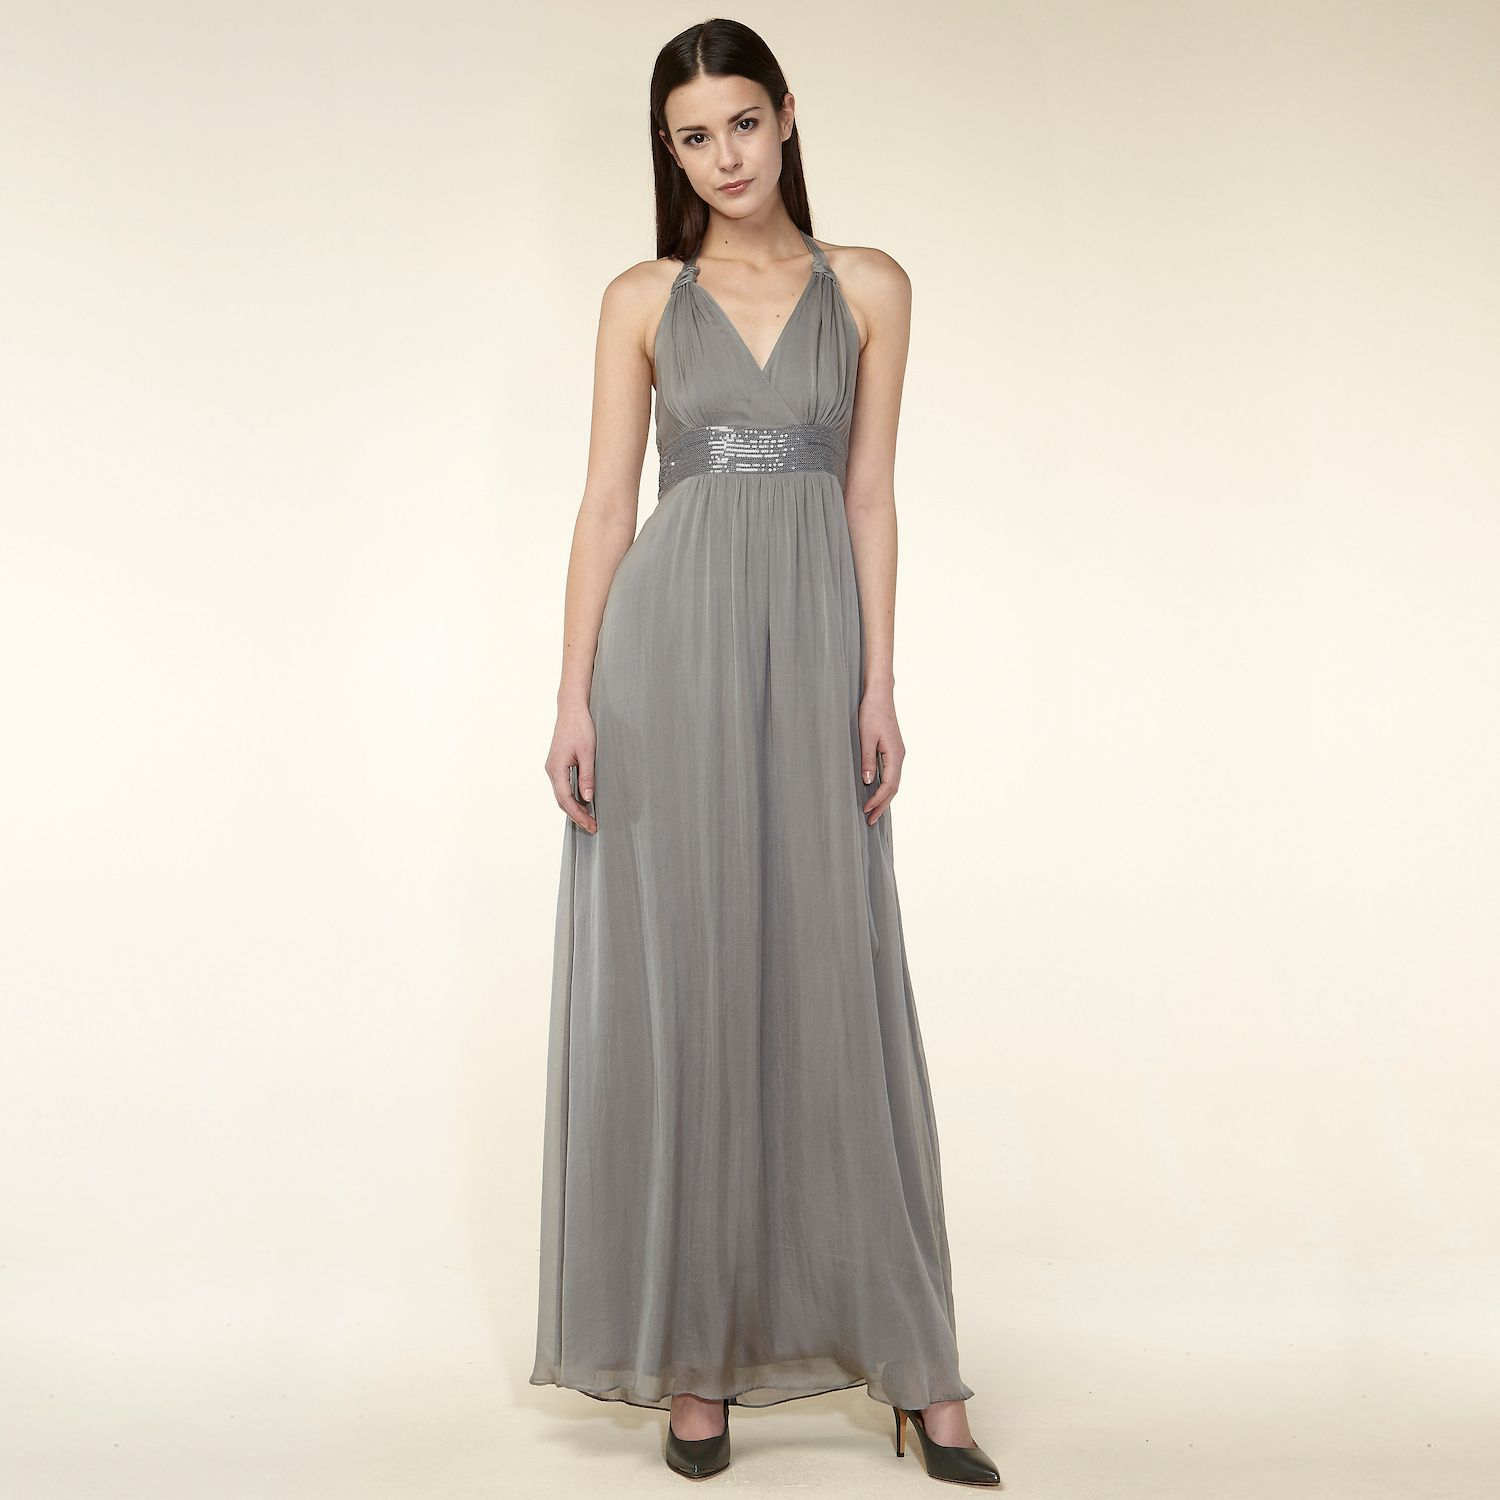 Empire waistline silk dress